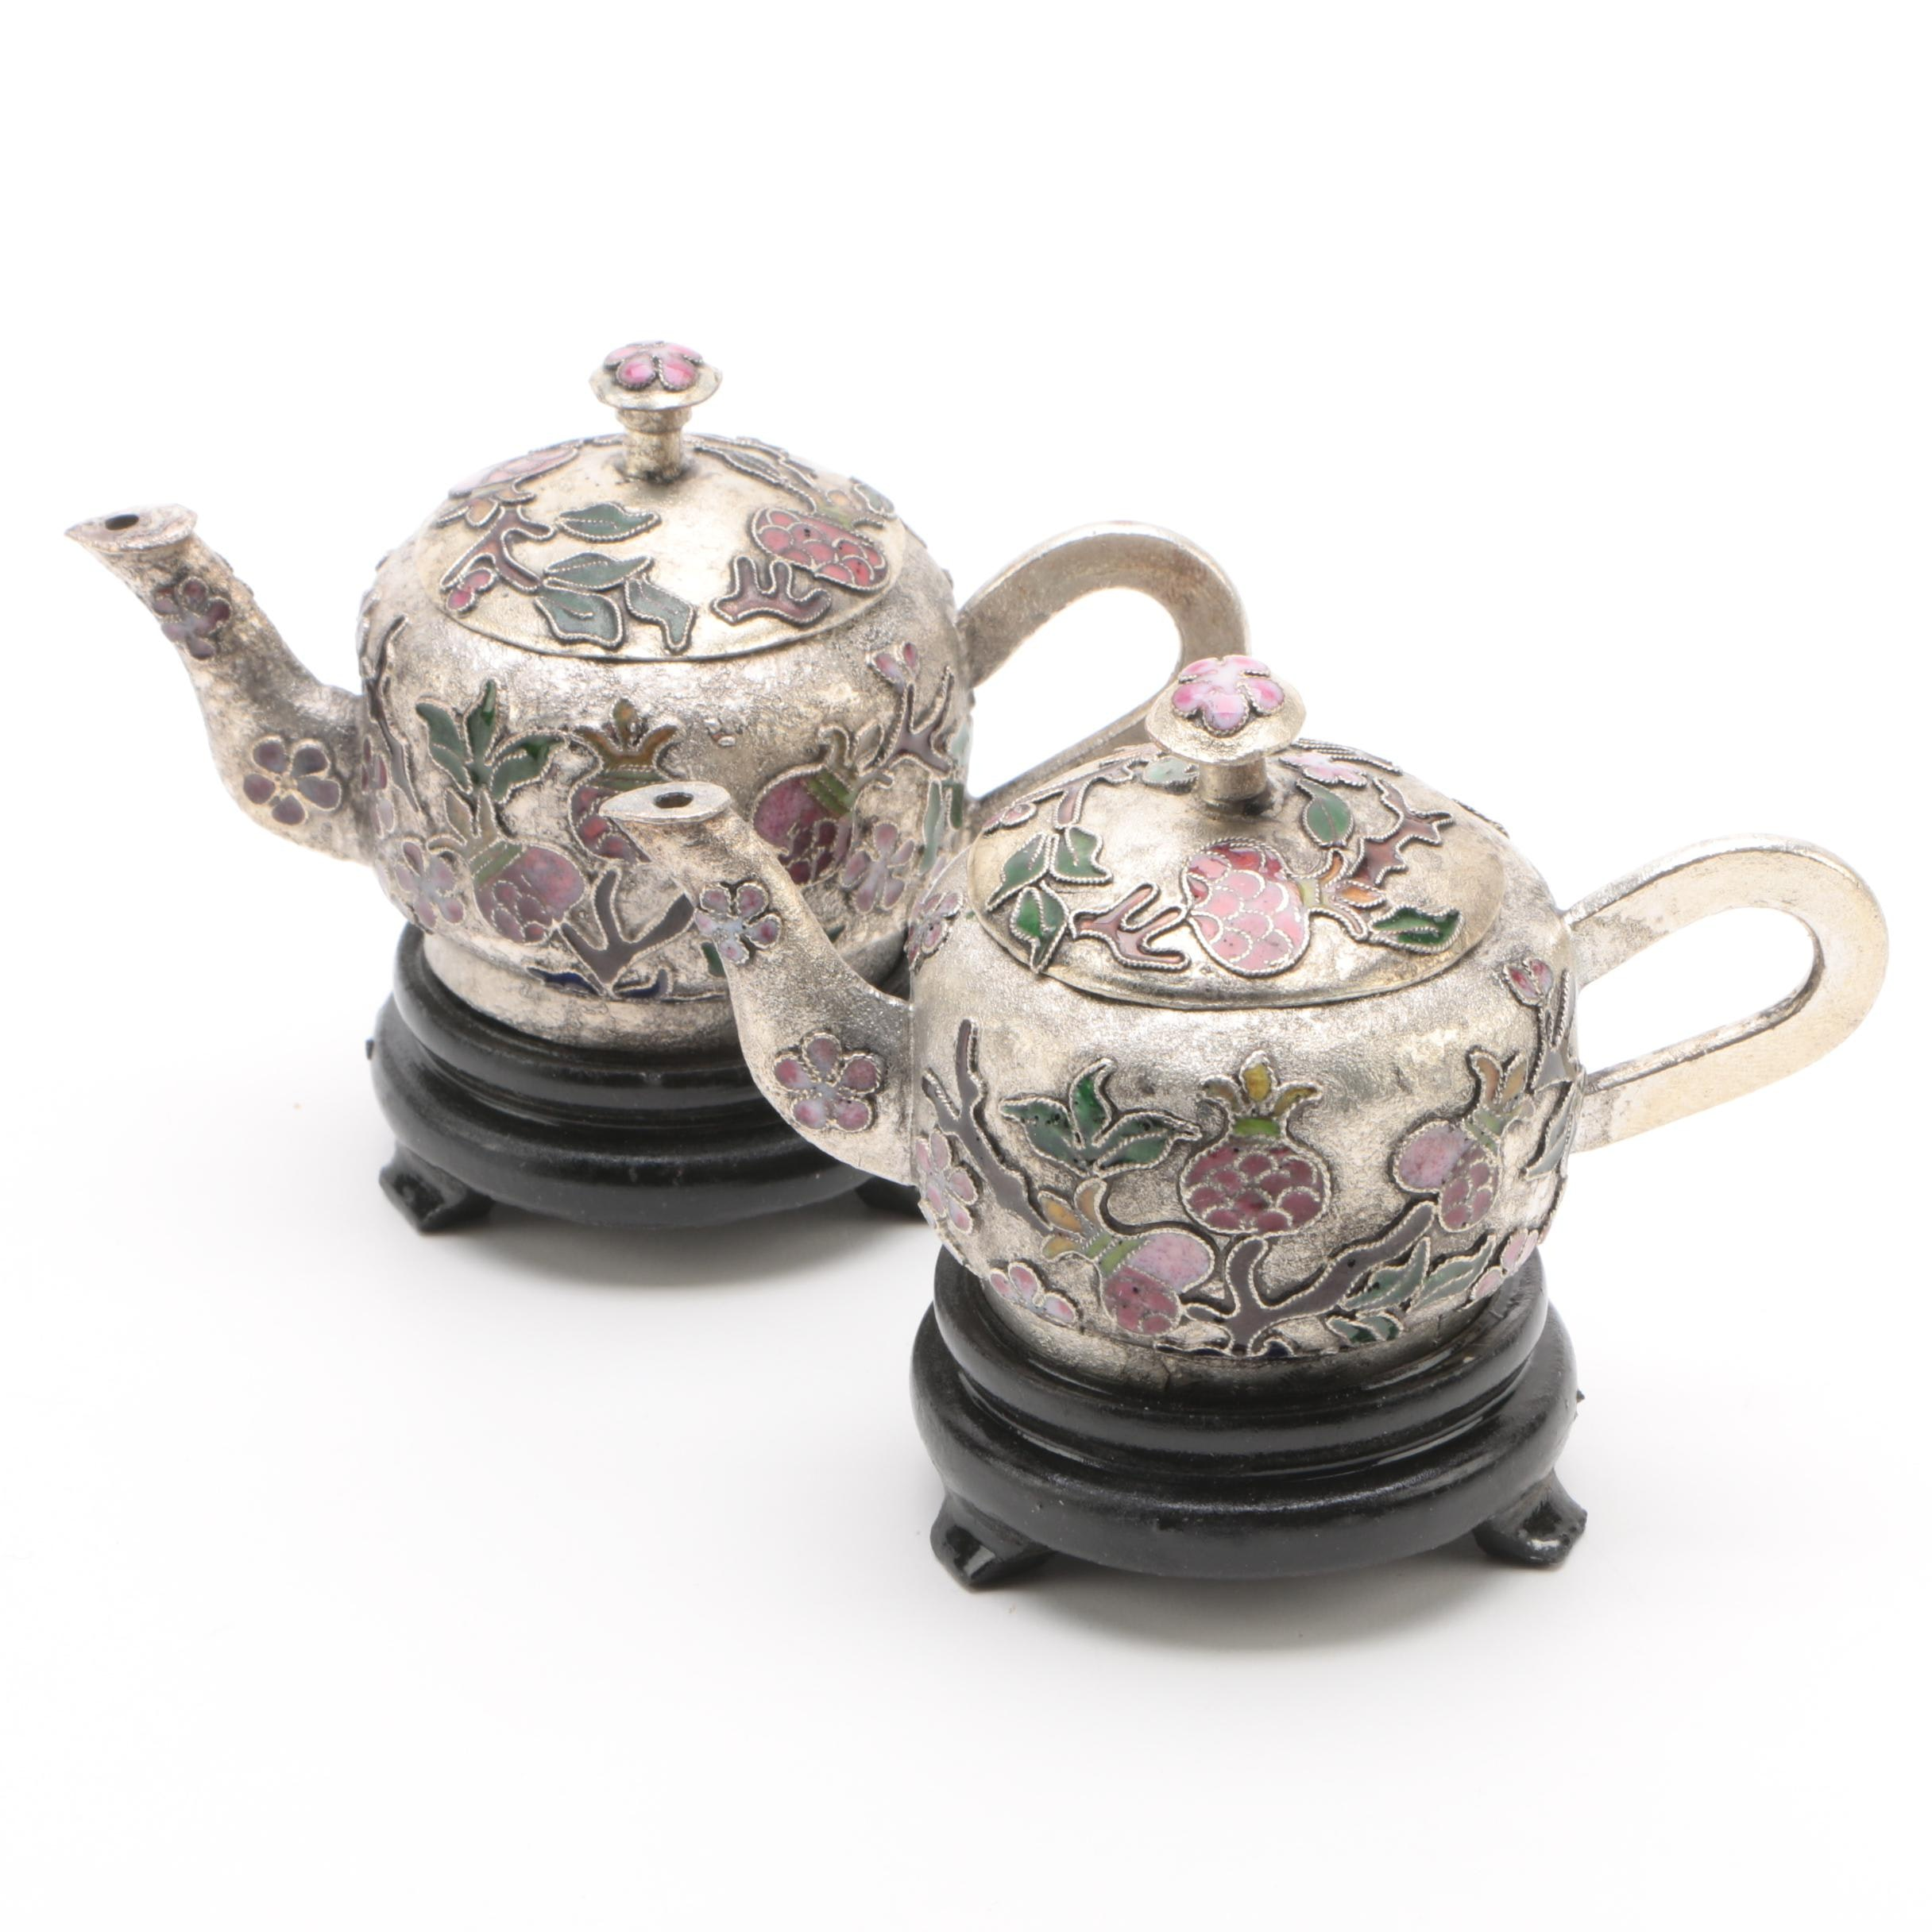 Chinese Cloisonné Miniature Teapots with Stands